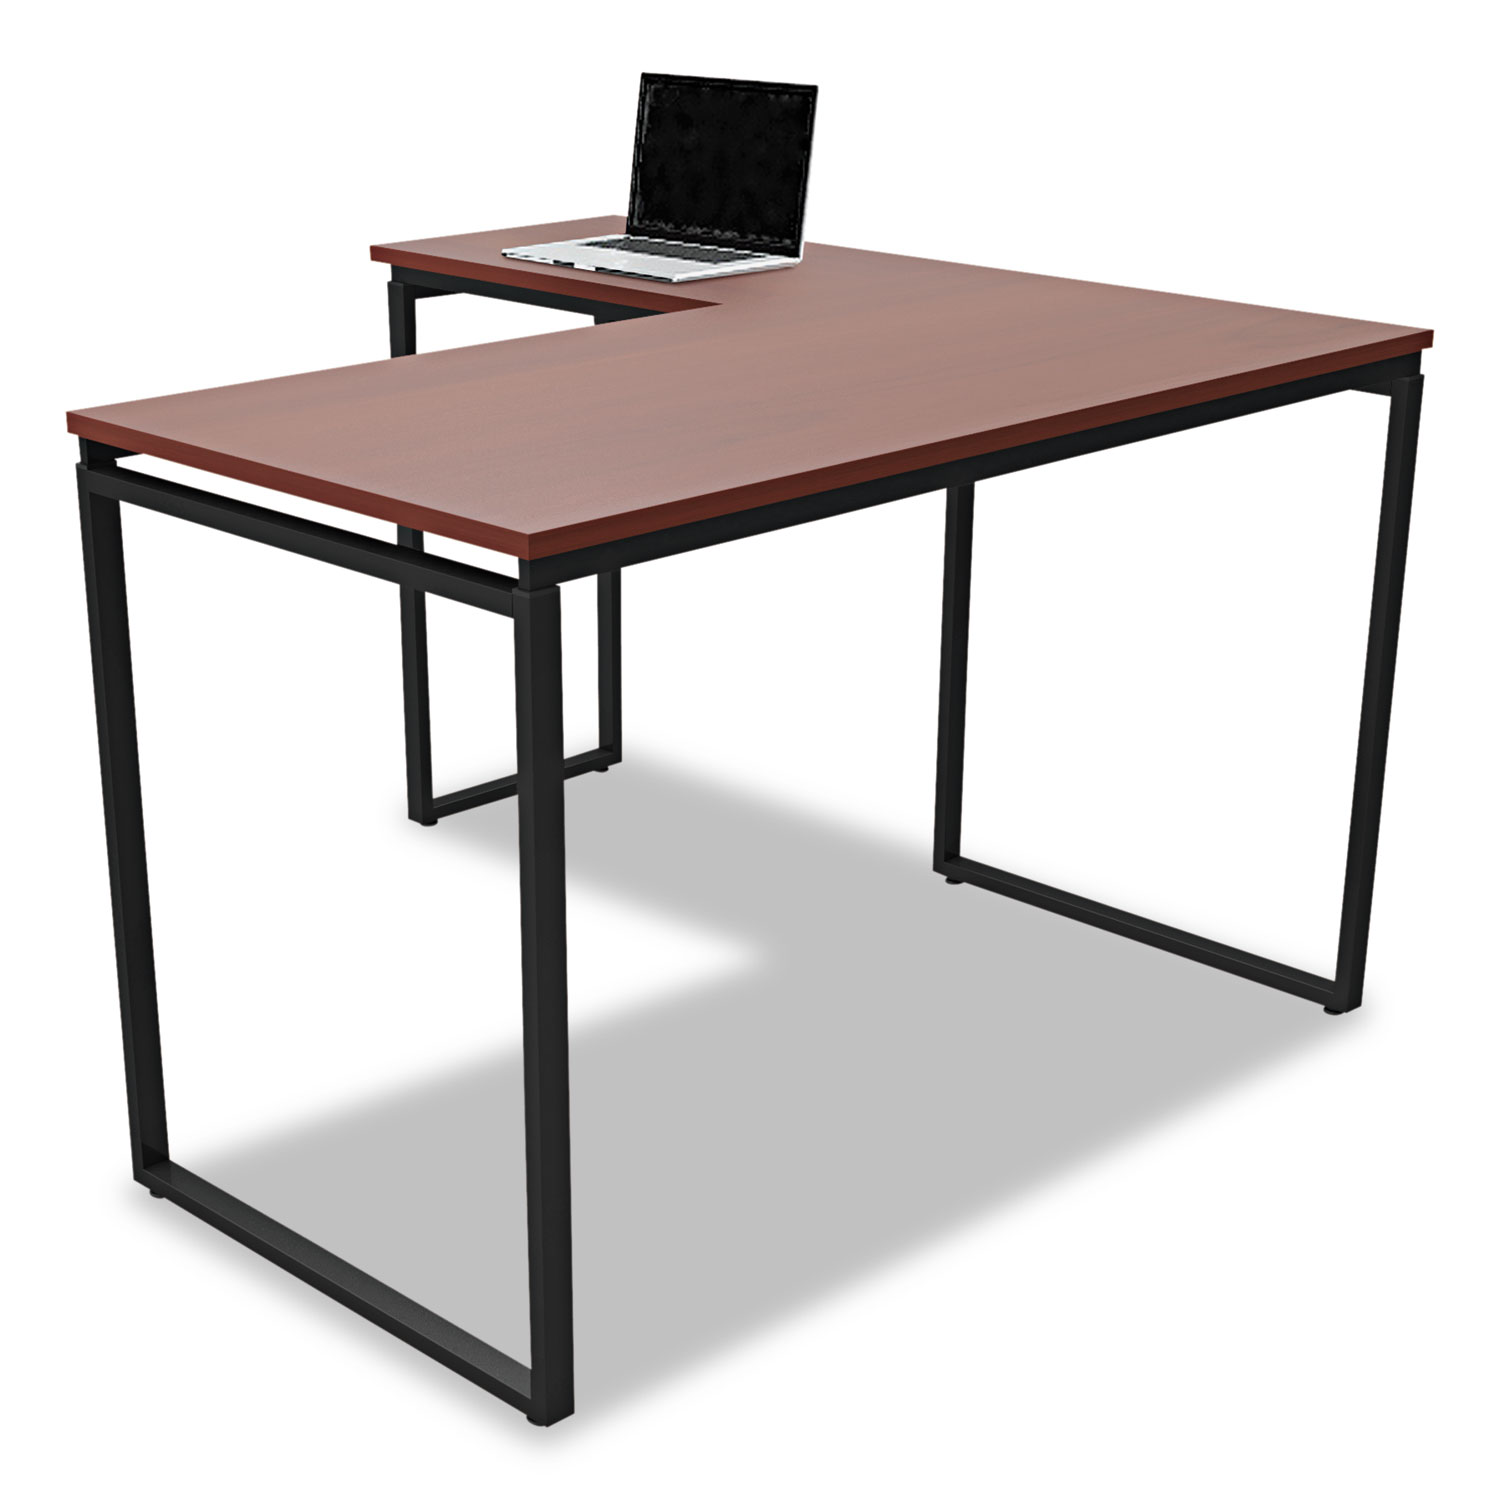 Linea Italia Seven Series L Shaped Desk